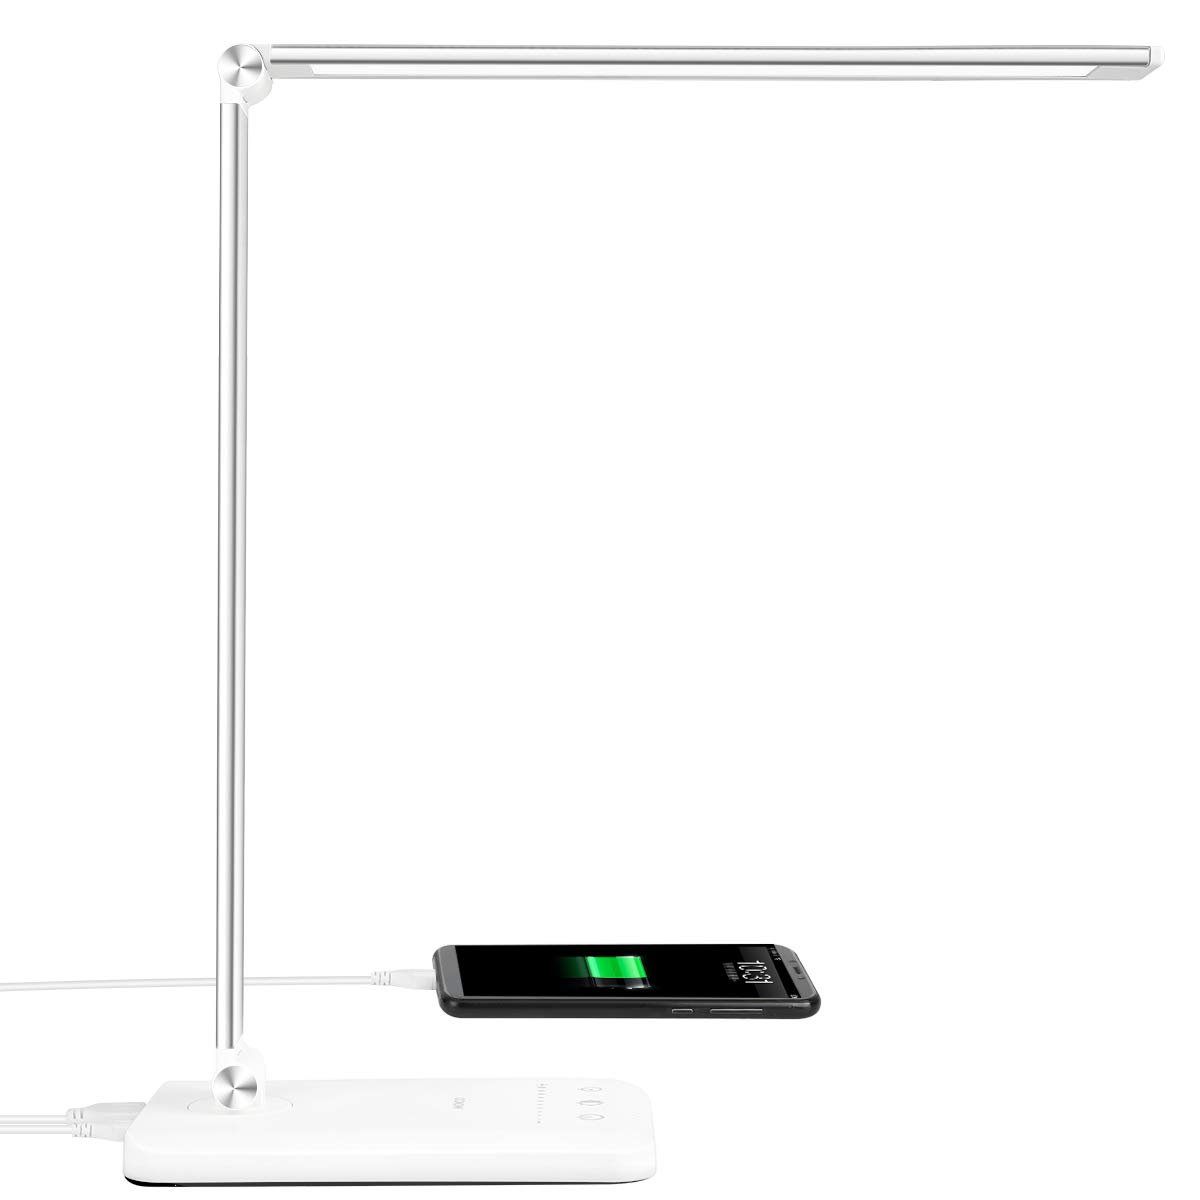 Led Desk Lamp Office Desk Lamps With Usb Charging Port And 2000mah Battery Dimmable Eye Caring Table Lamp With 5 Color Modes And 5 Brightness Levels Timer Memory Function Lamp For Working Reading